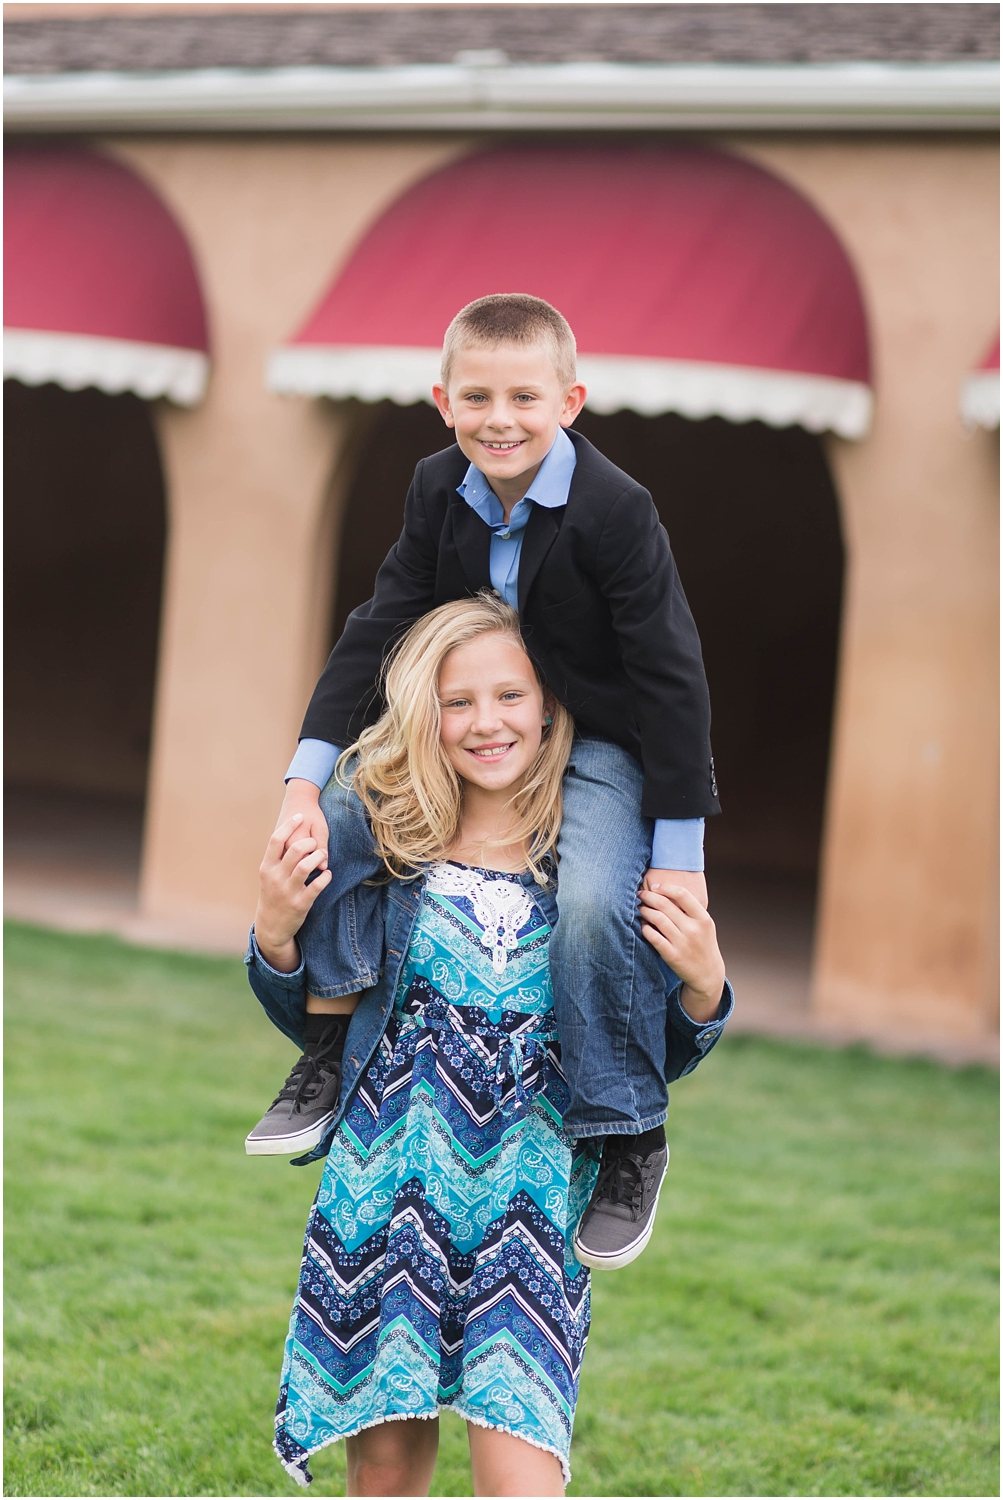 Family Photography in Albuquerque NM at Hartnett Park | Family of four with dog photo session